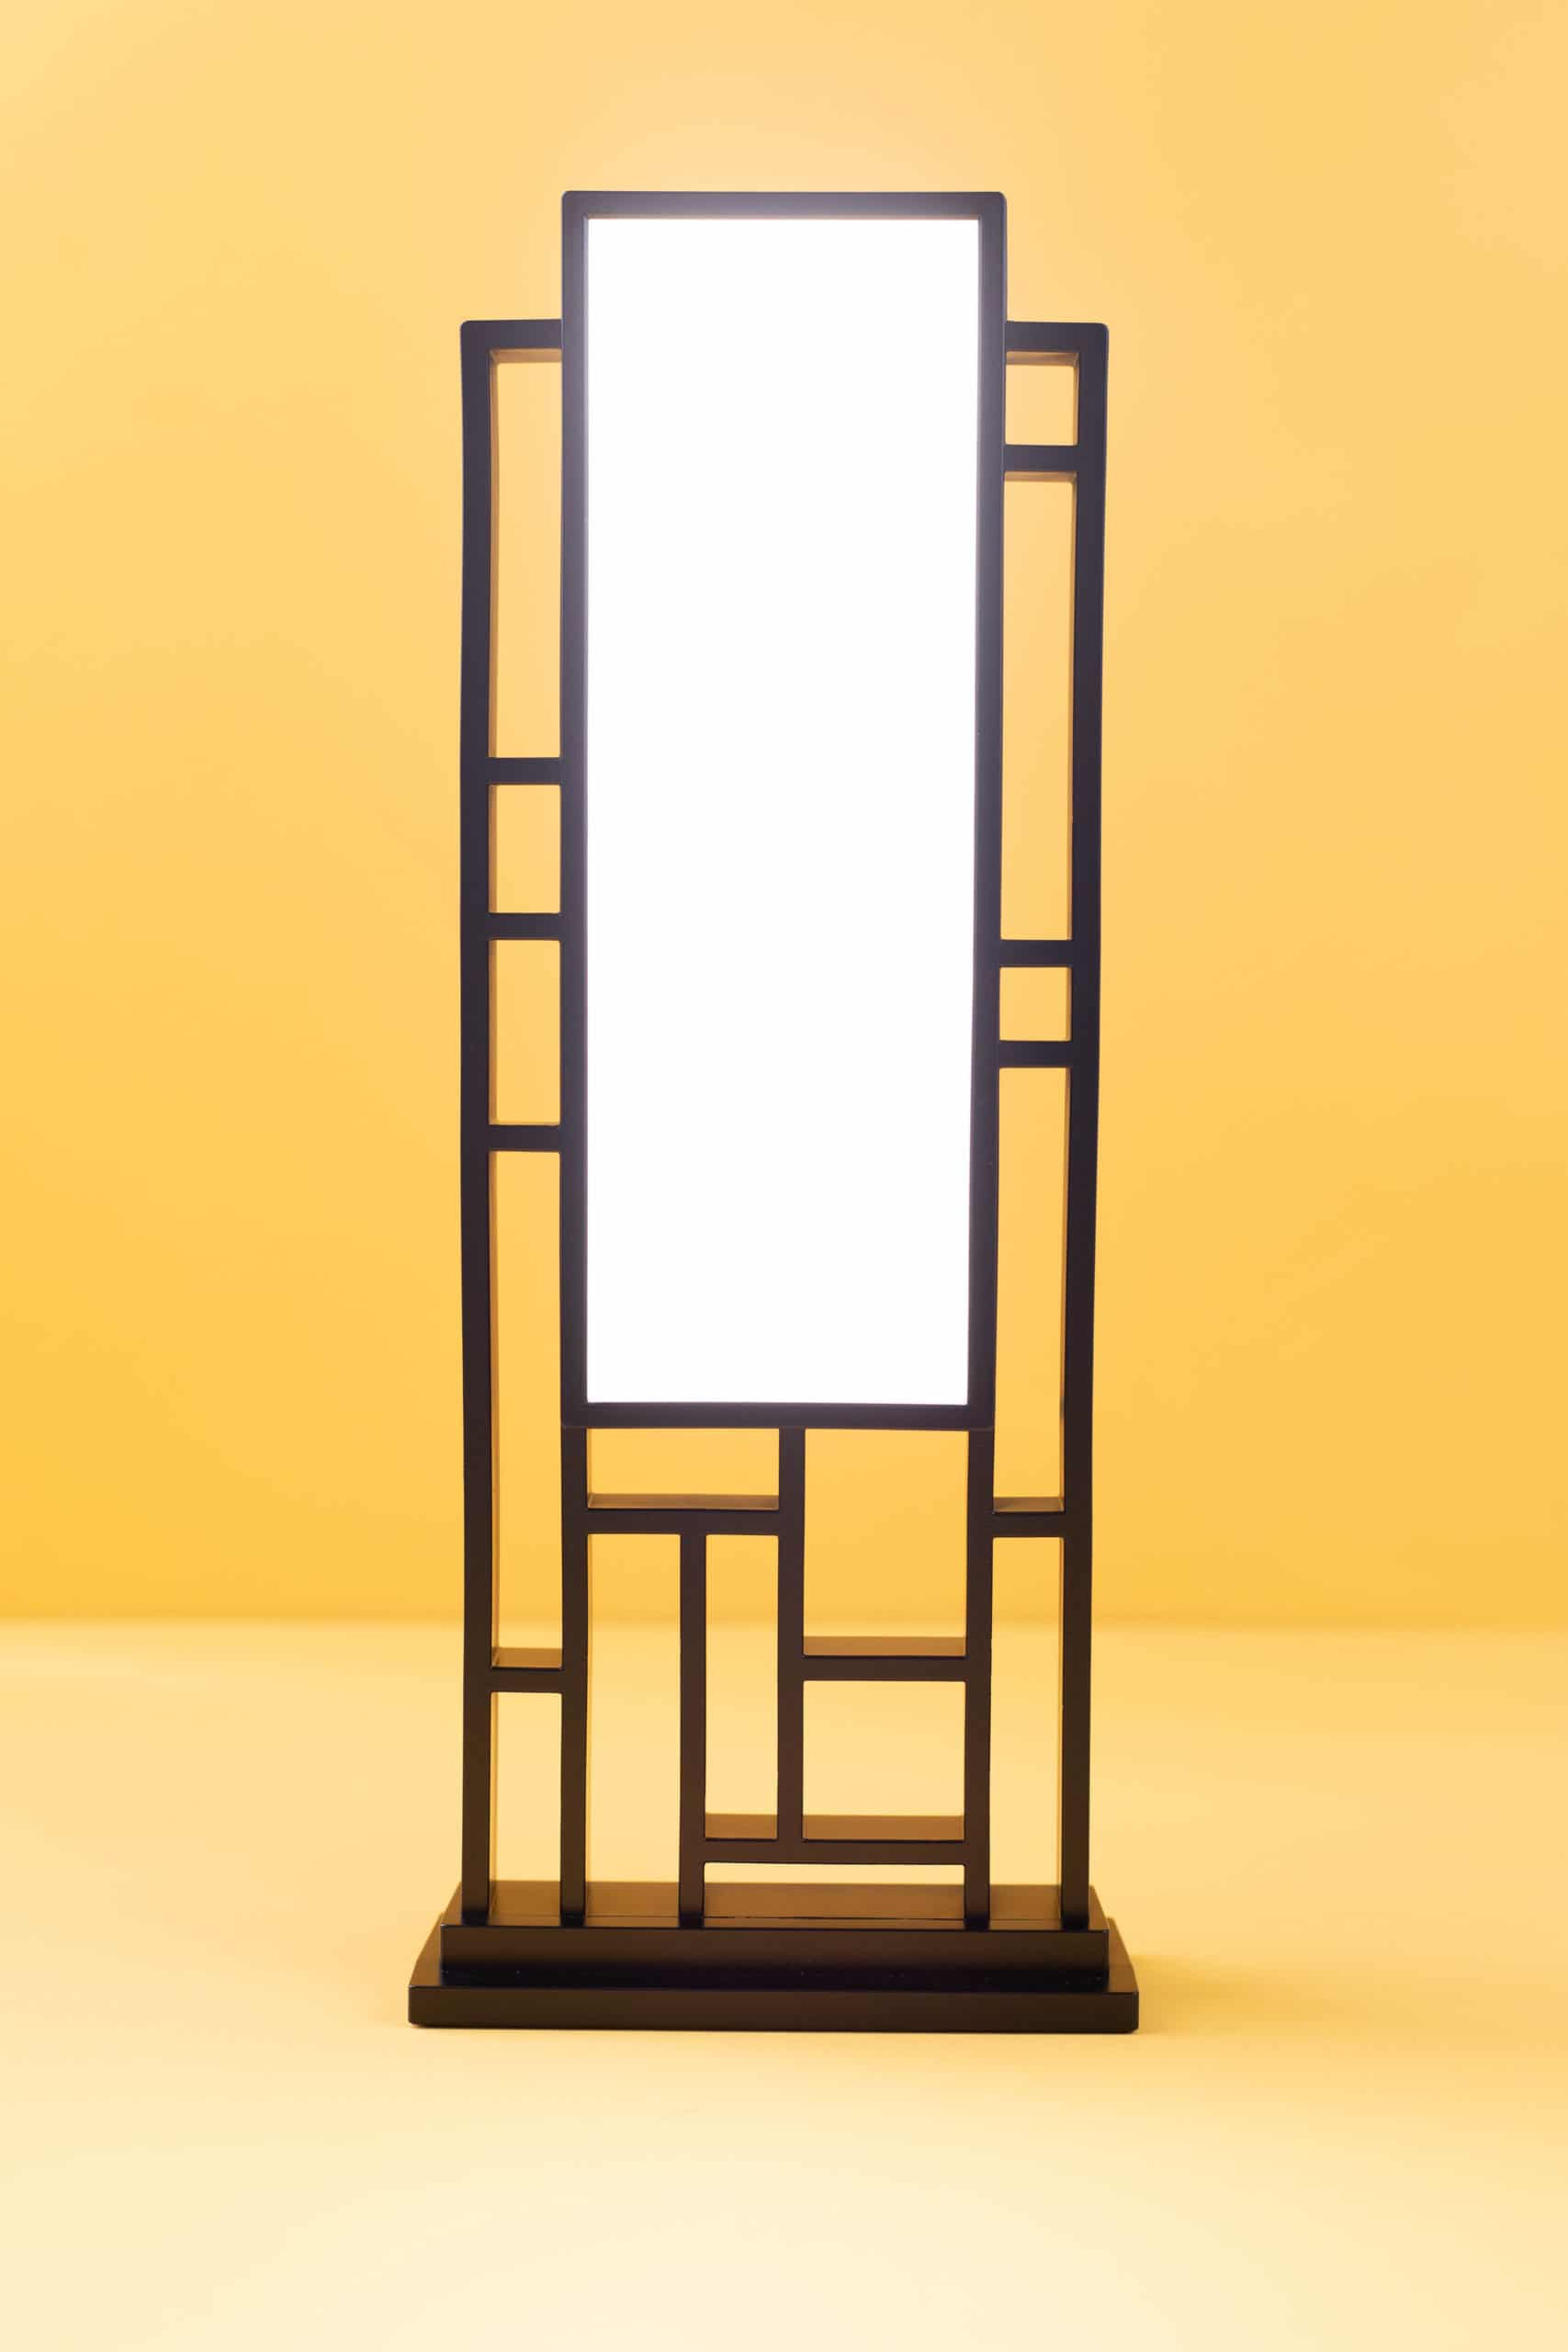 Circadian Optics Lattis Light Therapy Lamp. With its asymmetrical segments, clean silhouette and integrated light panel, it is a functional work of art. The lamp's revolutionary, quick one-touch operation makes it simple to use. No complicated settings to mess around with. 3 levels allows you to customize the brightness for the best efficacy and comfort.